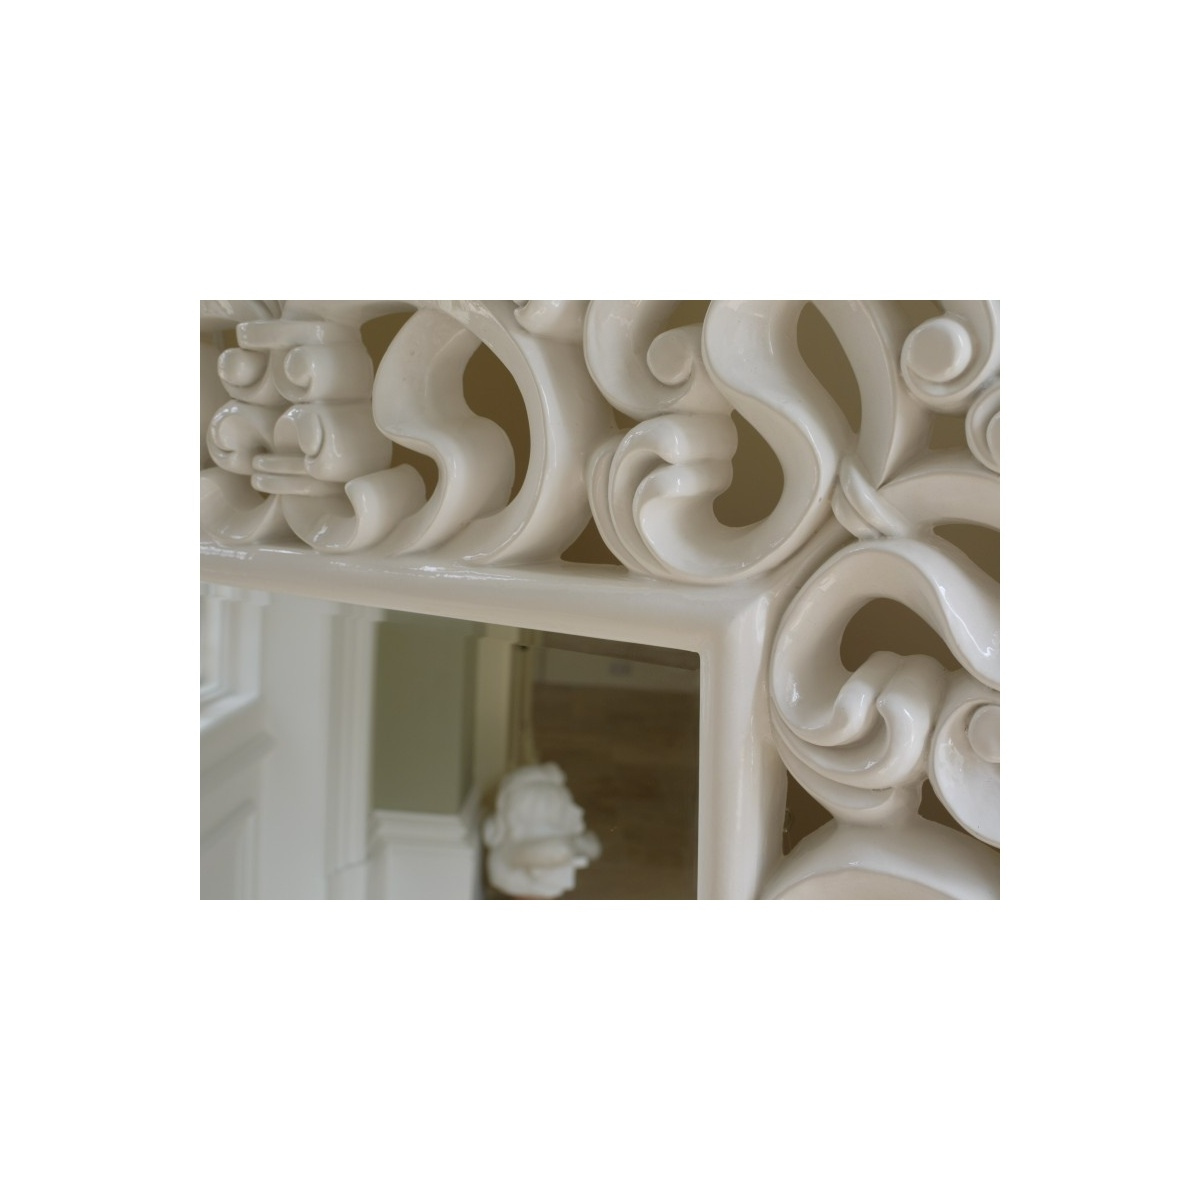 Buy Large French White Ornate Wall Mirror Swanky Interiors In Large White Ornate Mirror (Image 3 of 15)